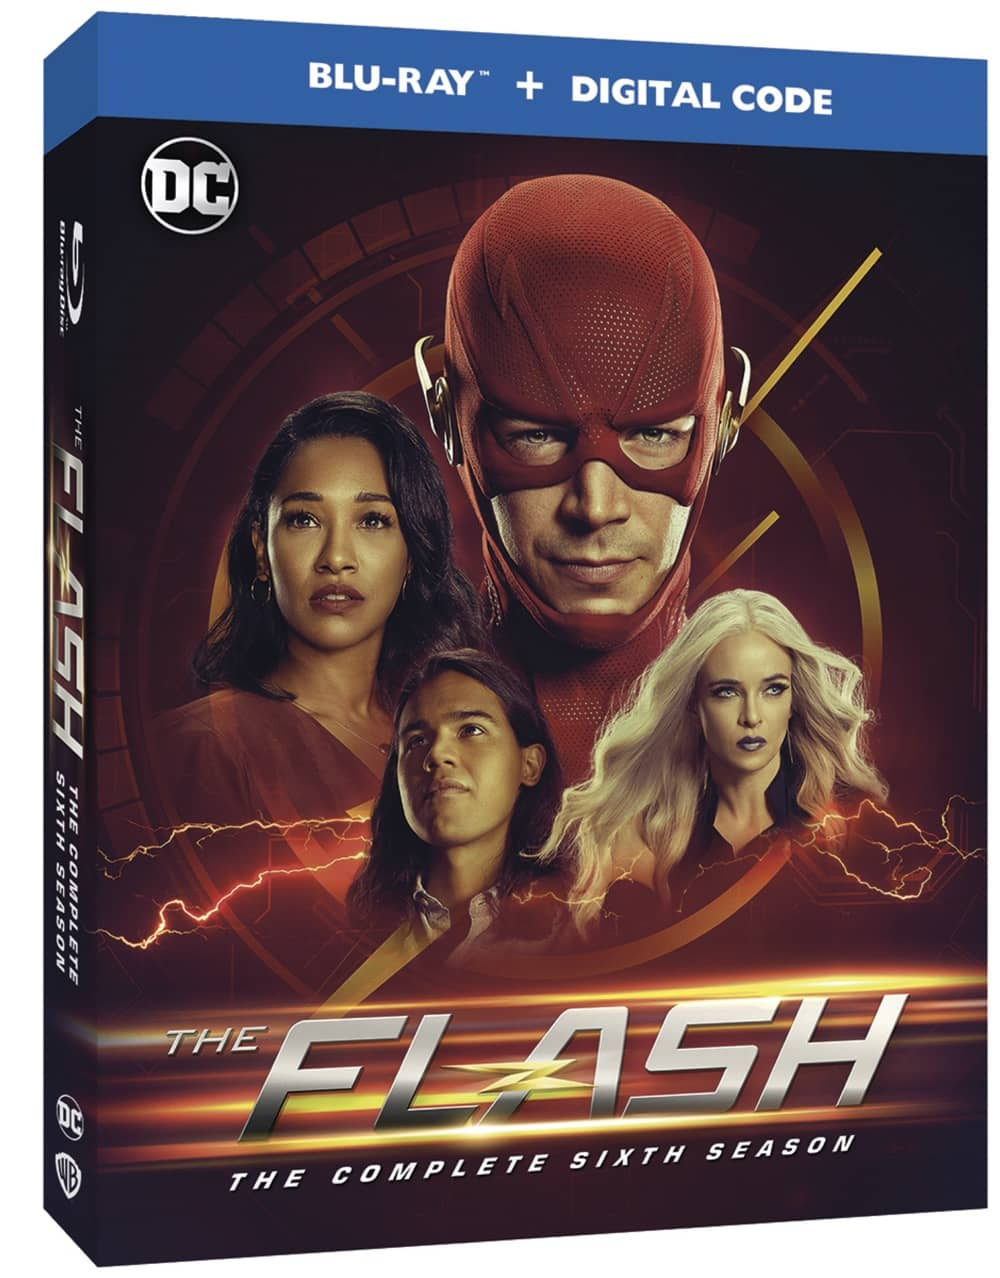 The Flash Season 6 Bluray Box Cover